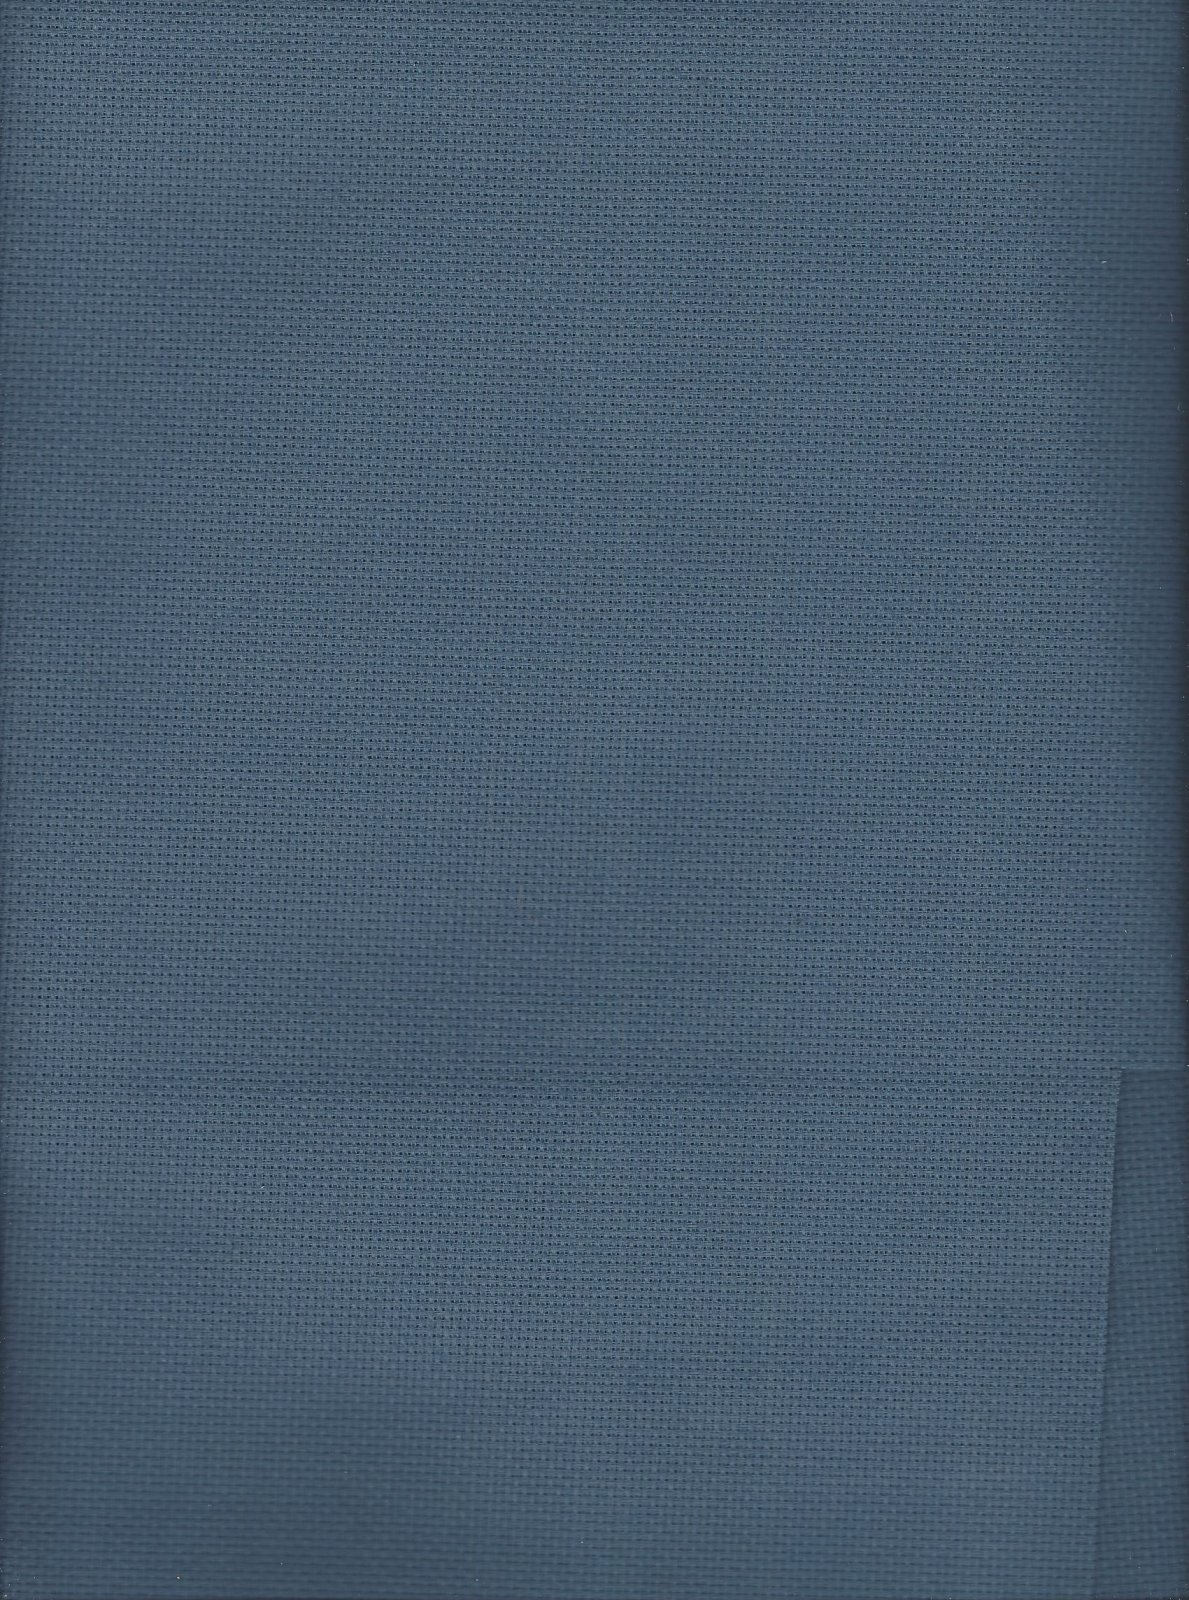 Aida 16ct French Blue/Blue Spruce (discontinued color)